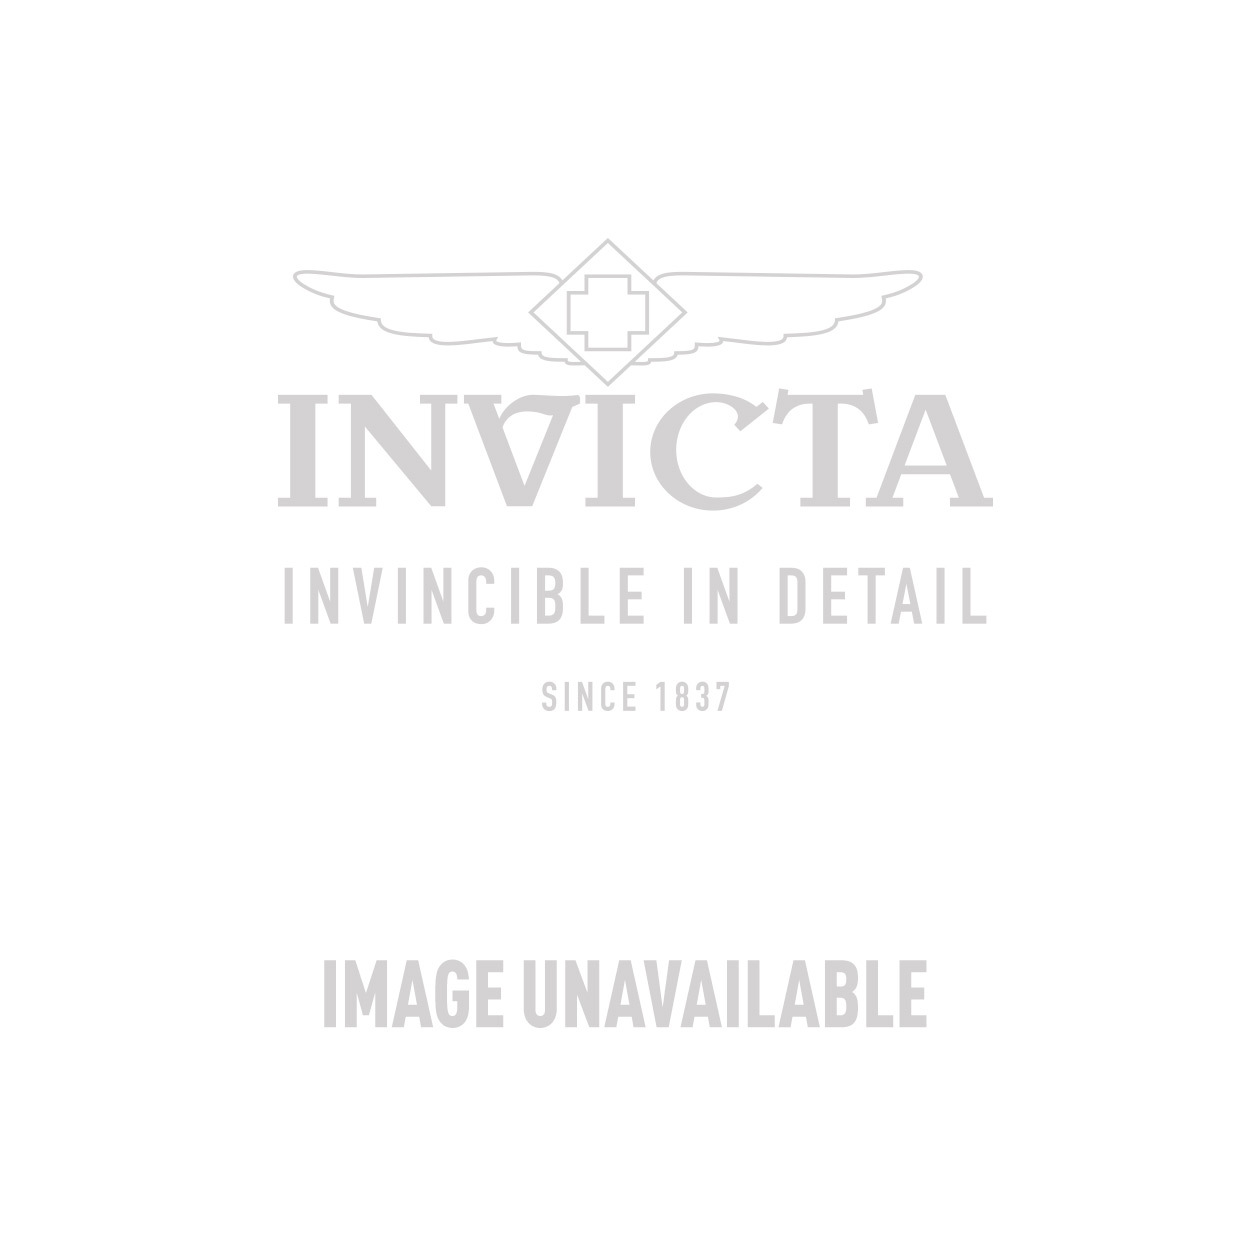 Invicta Specialty Quartz Watch - Stainless Steel case Stainless Steel band - Model 15057